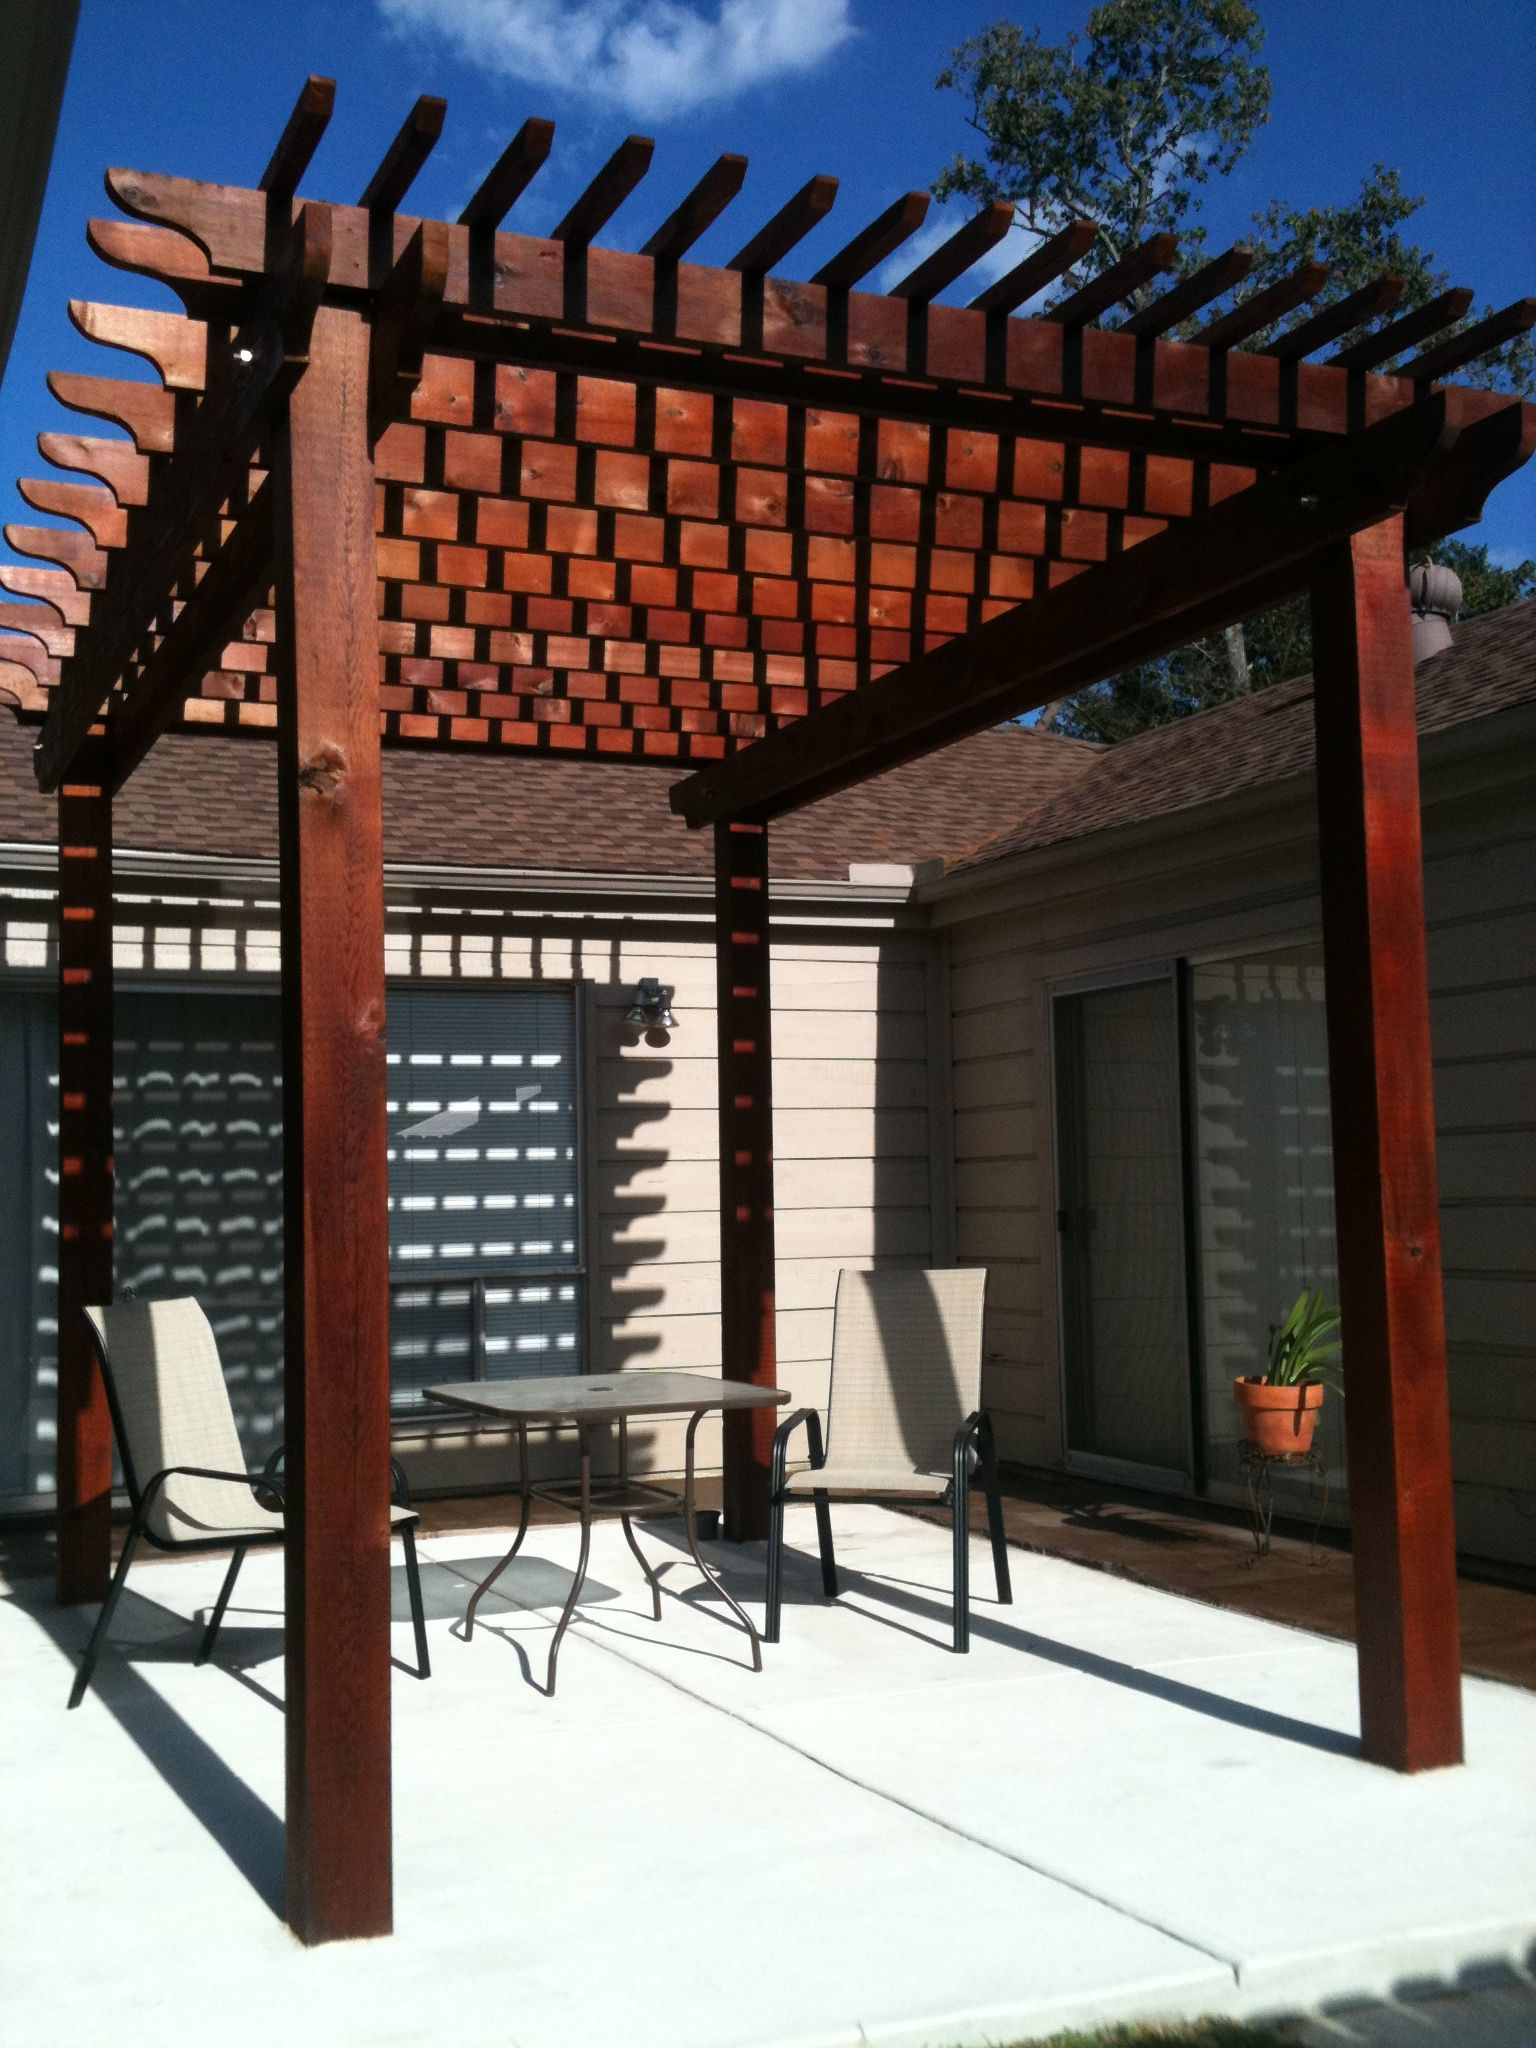 Rustic Outdoor Pergola And Stained Concrete Patio By The Western Patio Company In Spring Texas Pergola Patio Pergola Outdoor Pergola